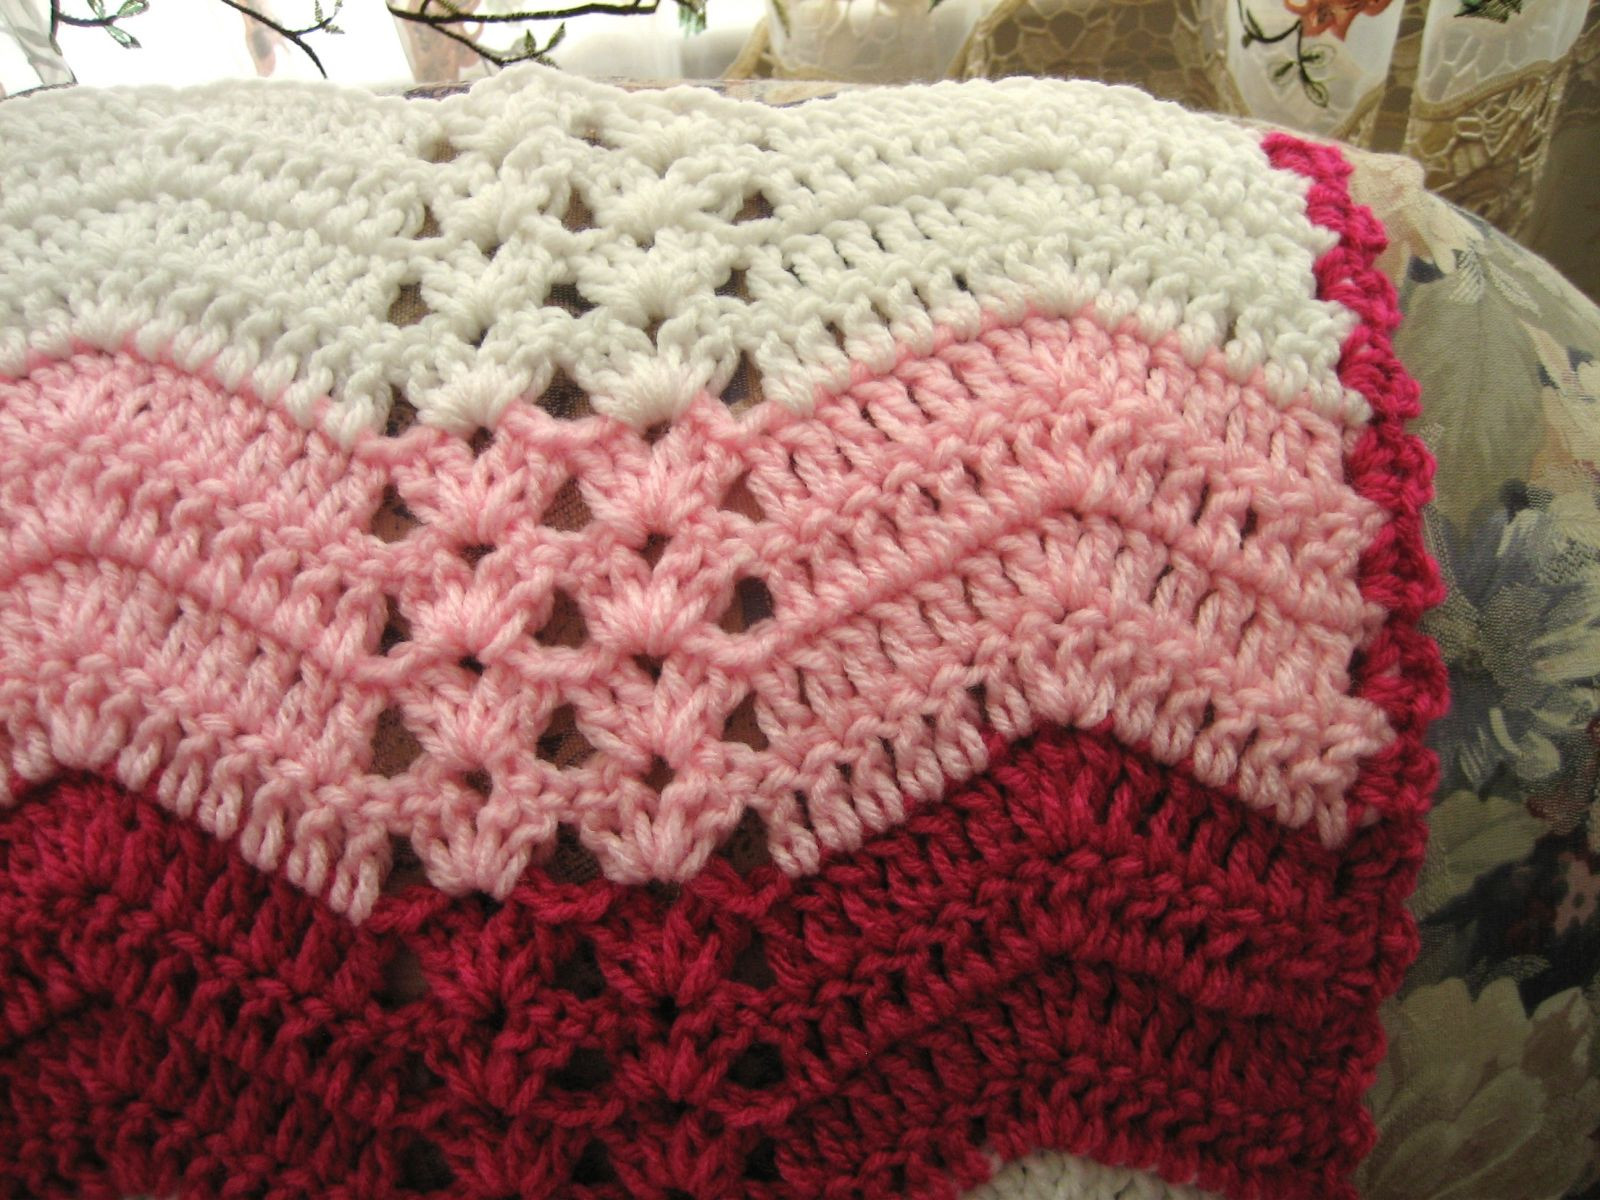 Crochet Afghan Patterns Beautiful White Chocolate Strawberry Double Shell Ripple Of New 40 Pics Crochet Afghan Patterns